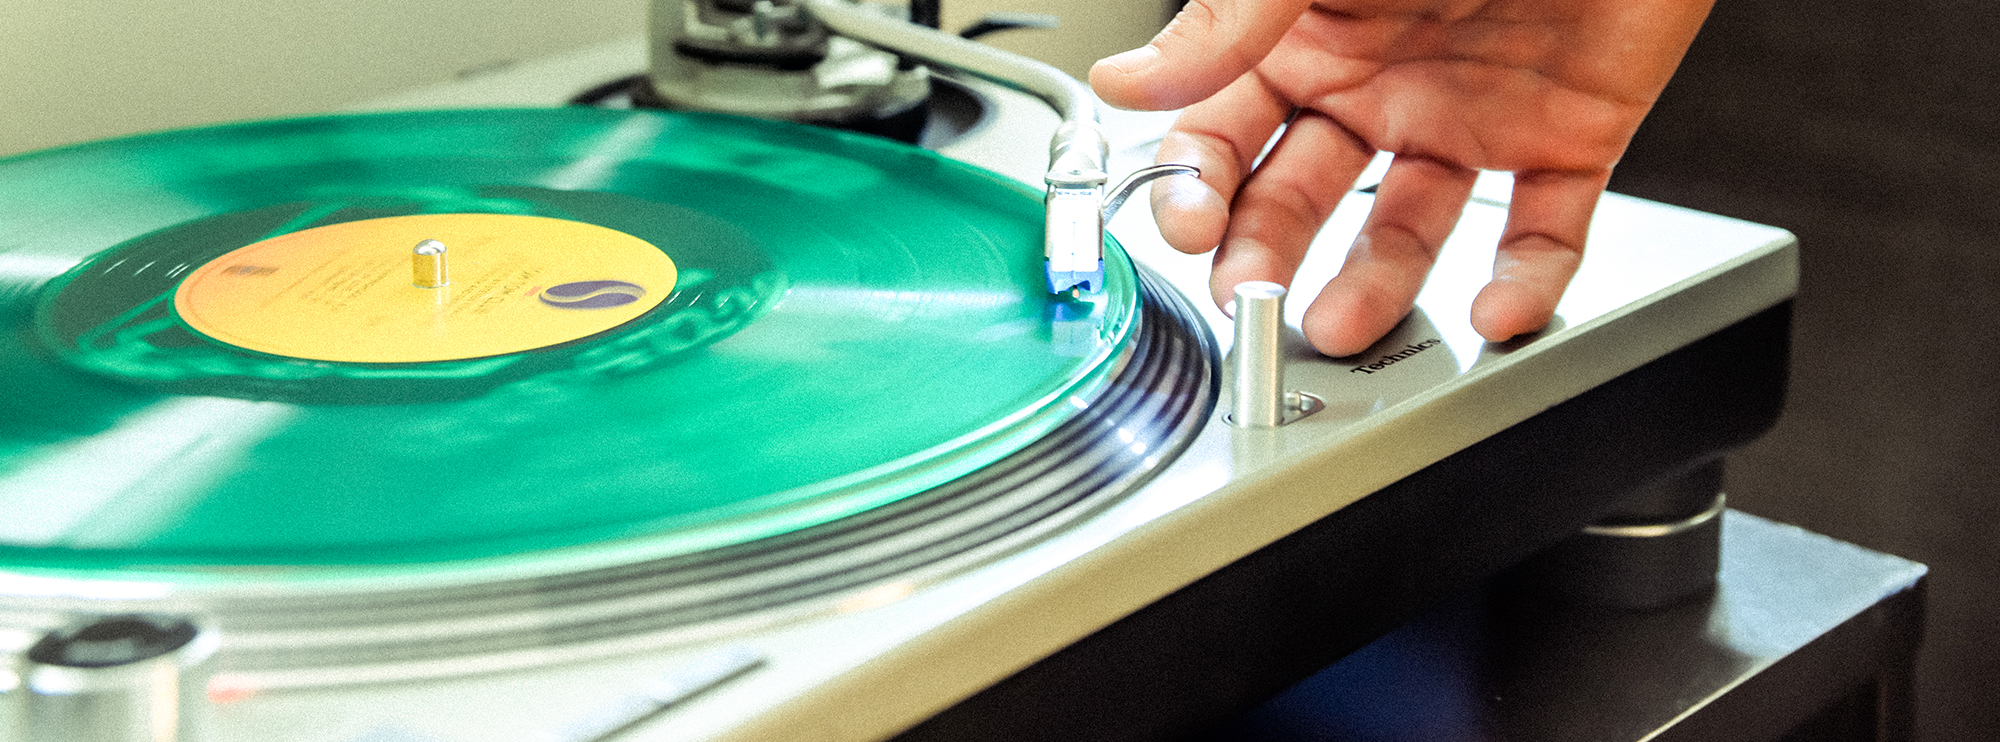 Does the Color of a Vinyl Record Affect the Sound Quality? | Reverb LP